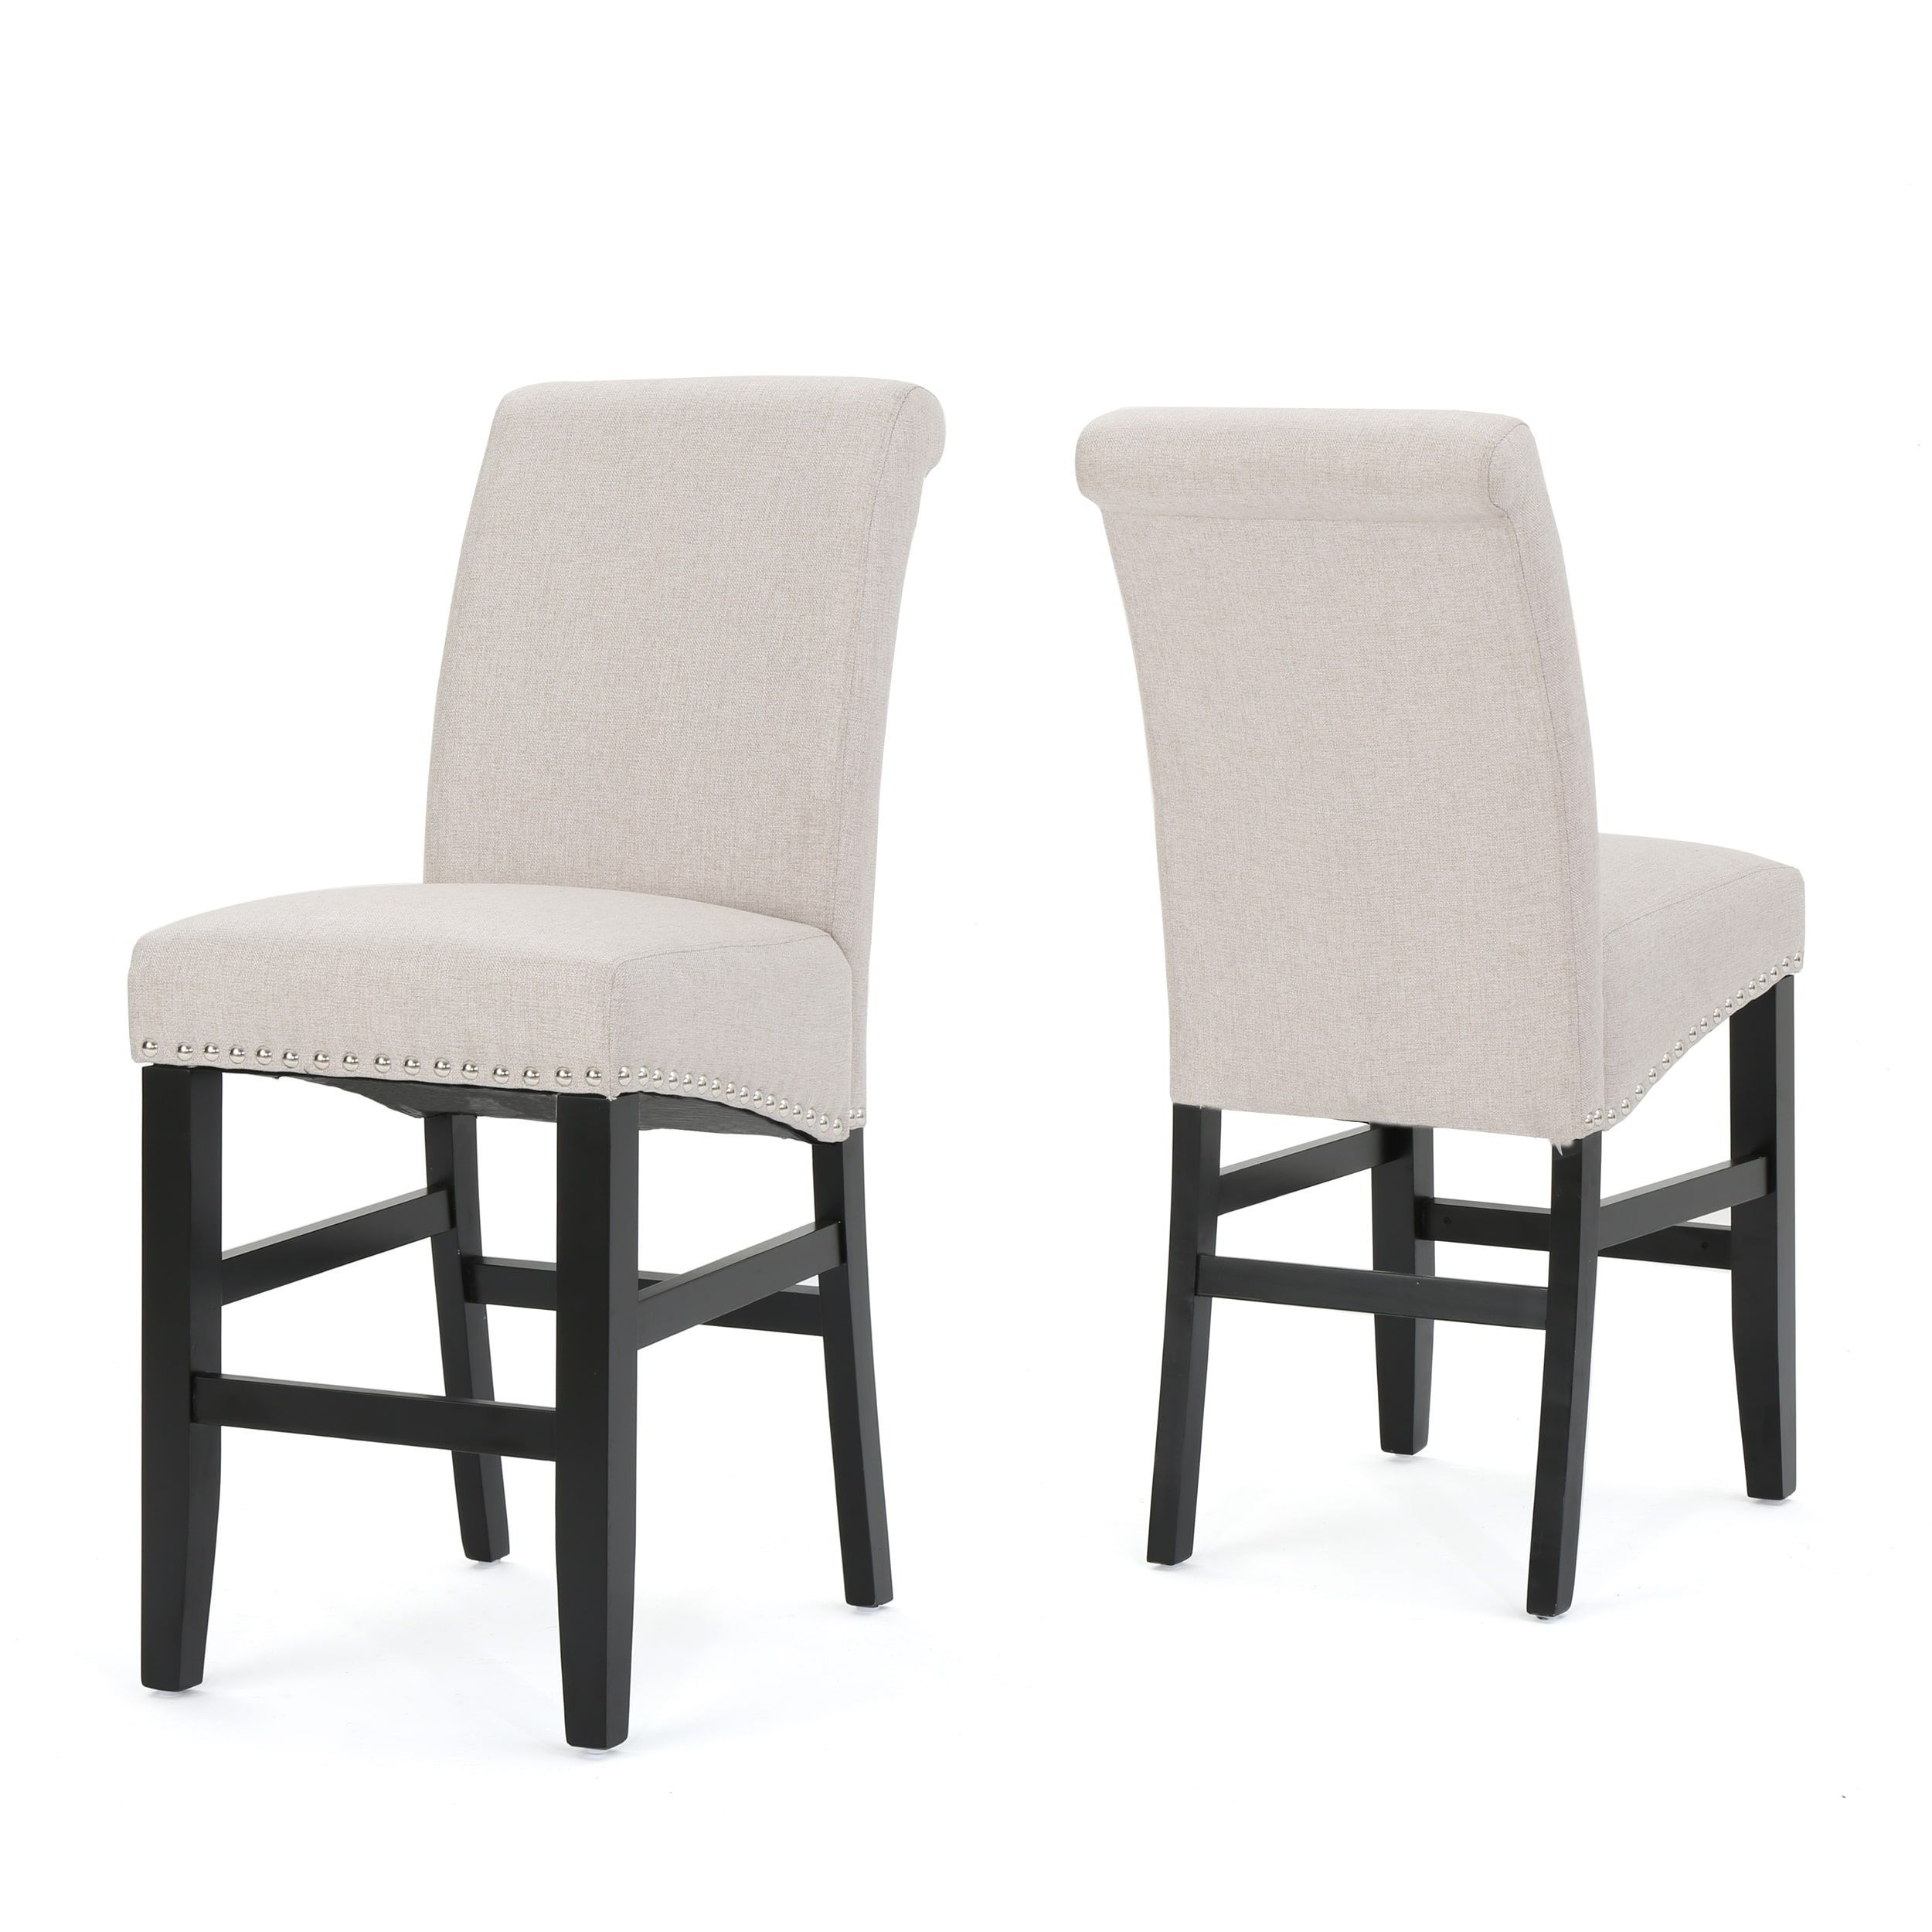 Lisette inch studded fabric backed counter stool with kickplate